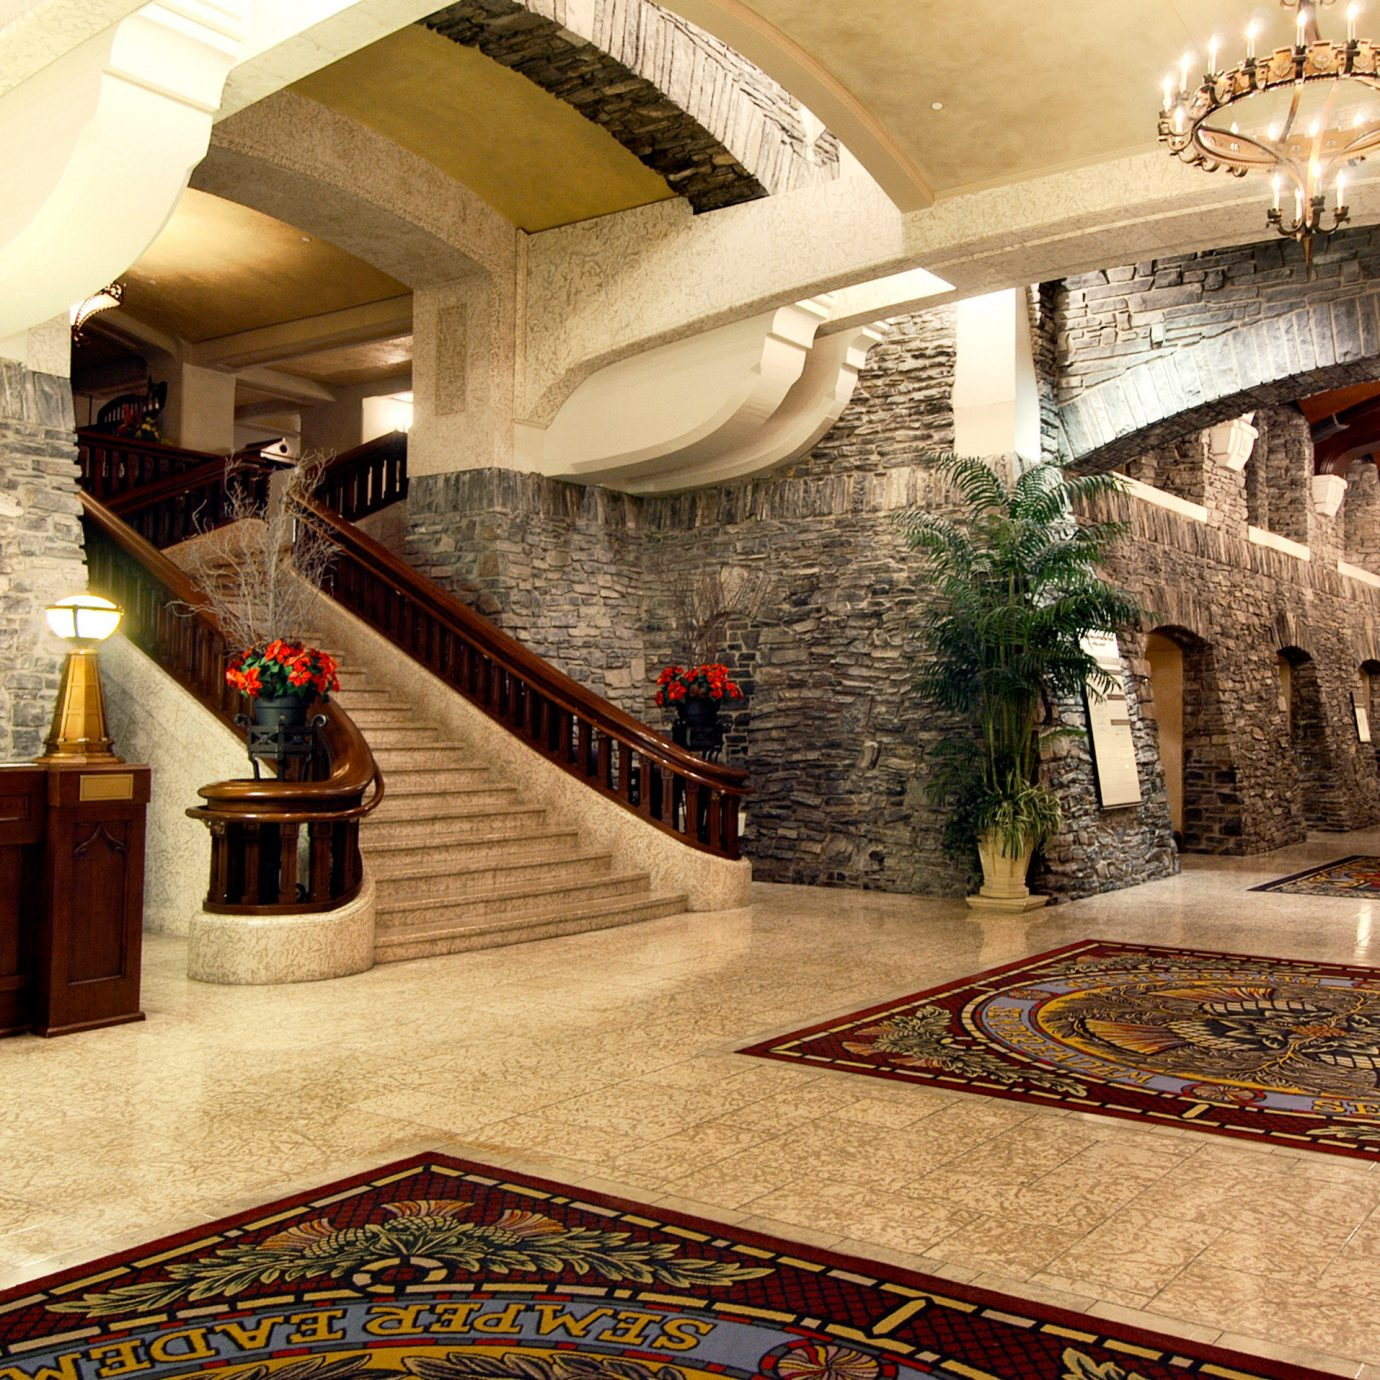 Lobby Lounge Resort mansion palace flooring ancient history Courtyard